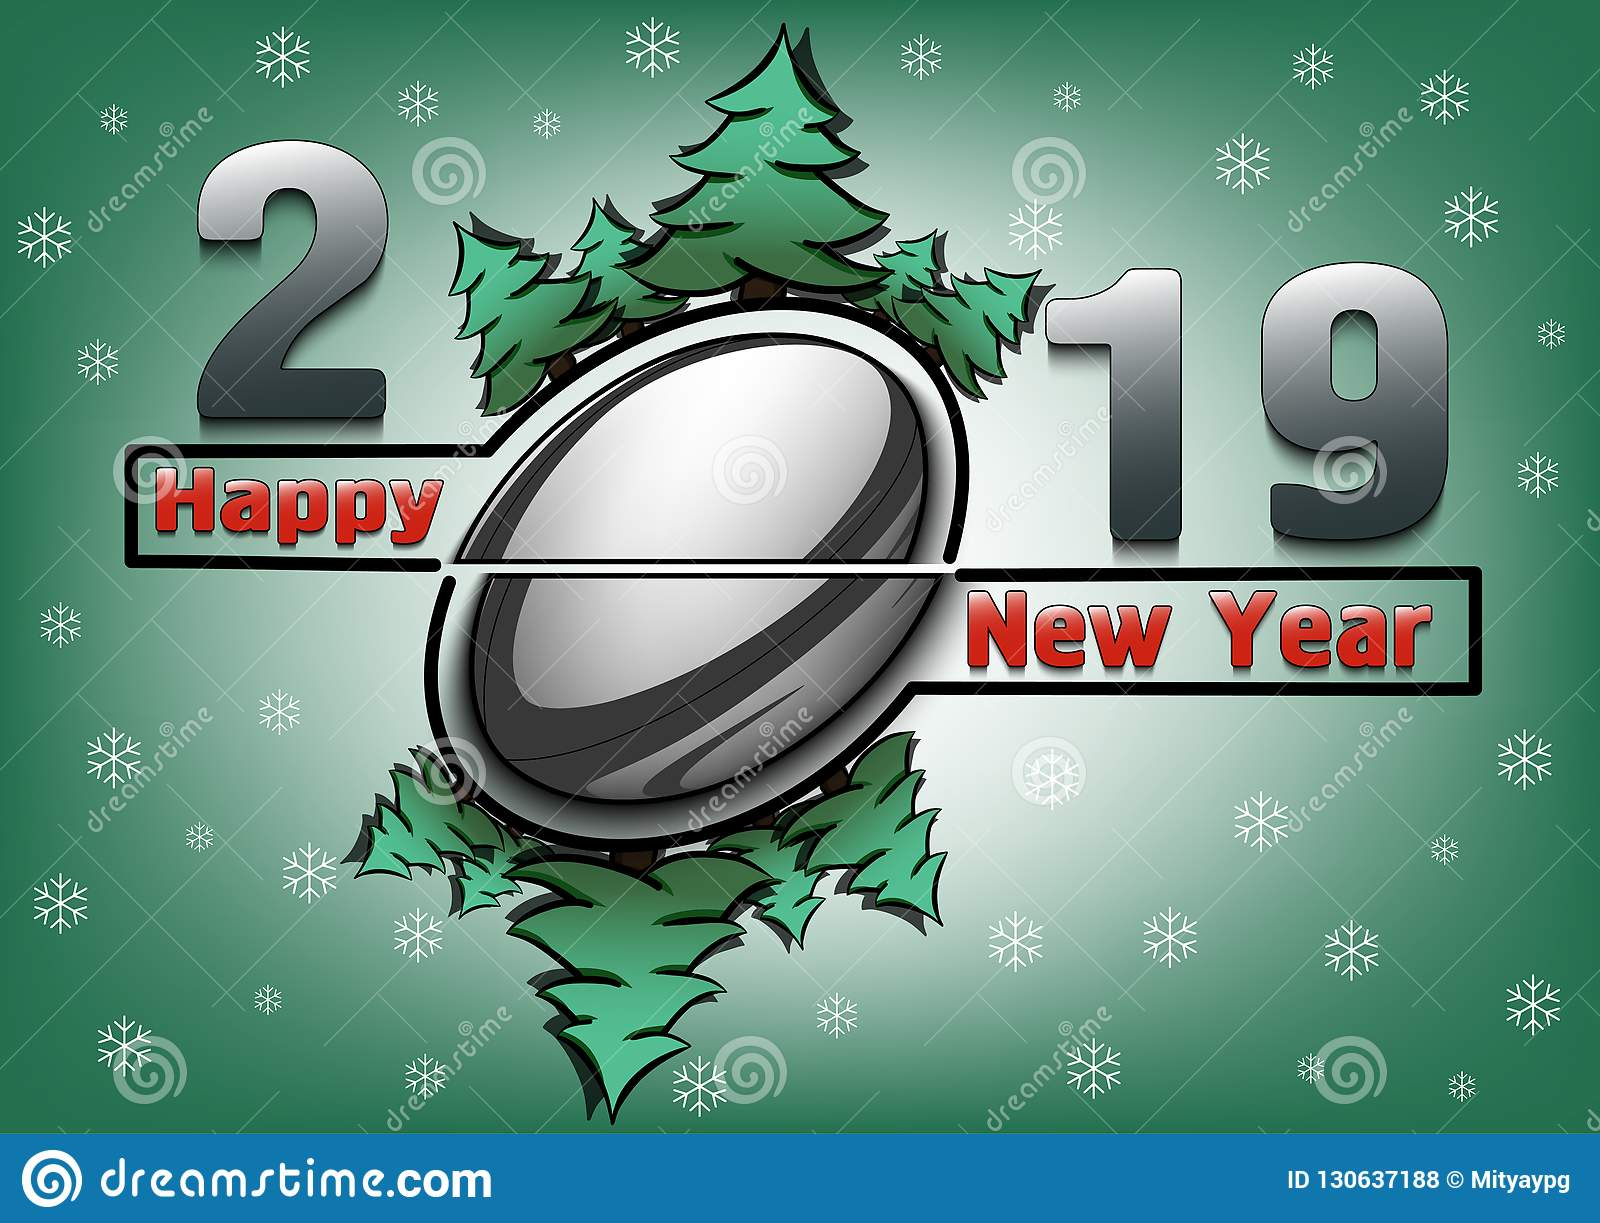 Happy New Year 2019 And Rugby Ball Stock Vector Illustration Of